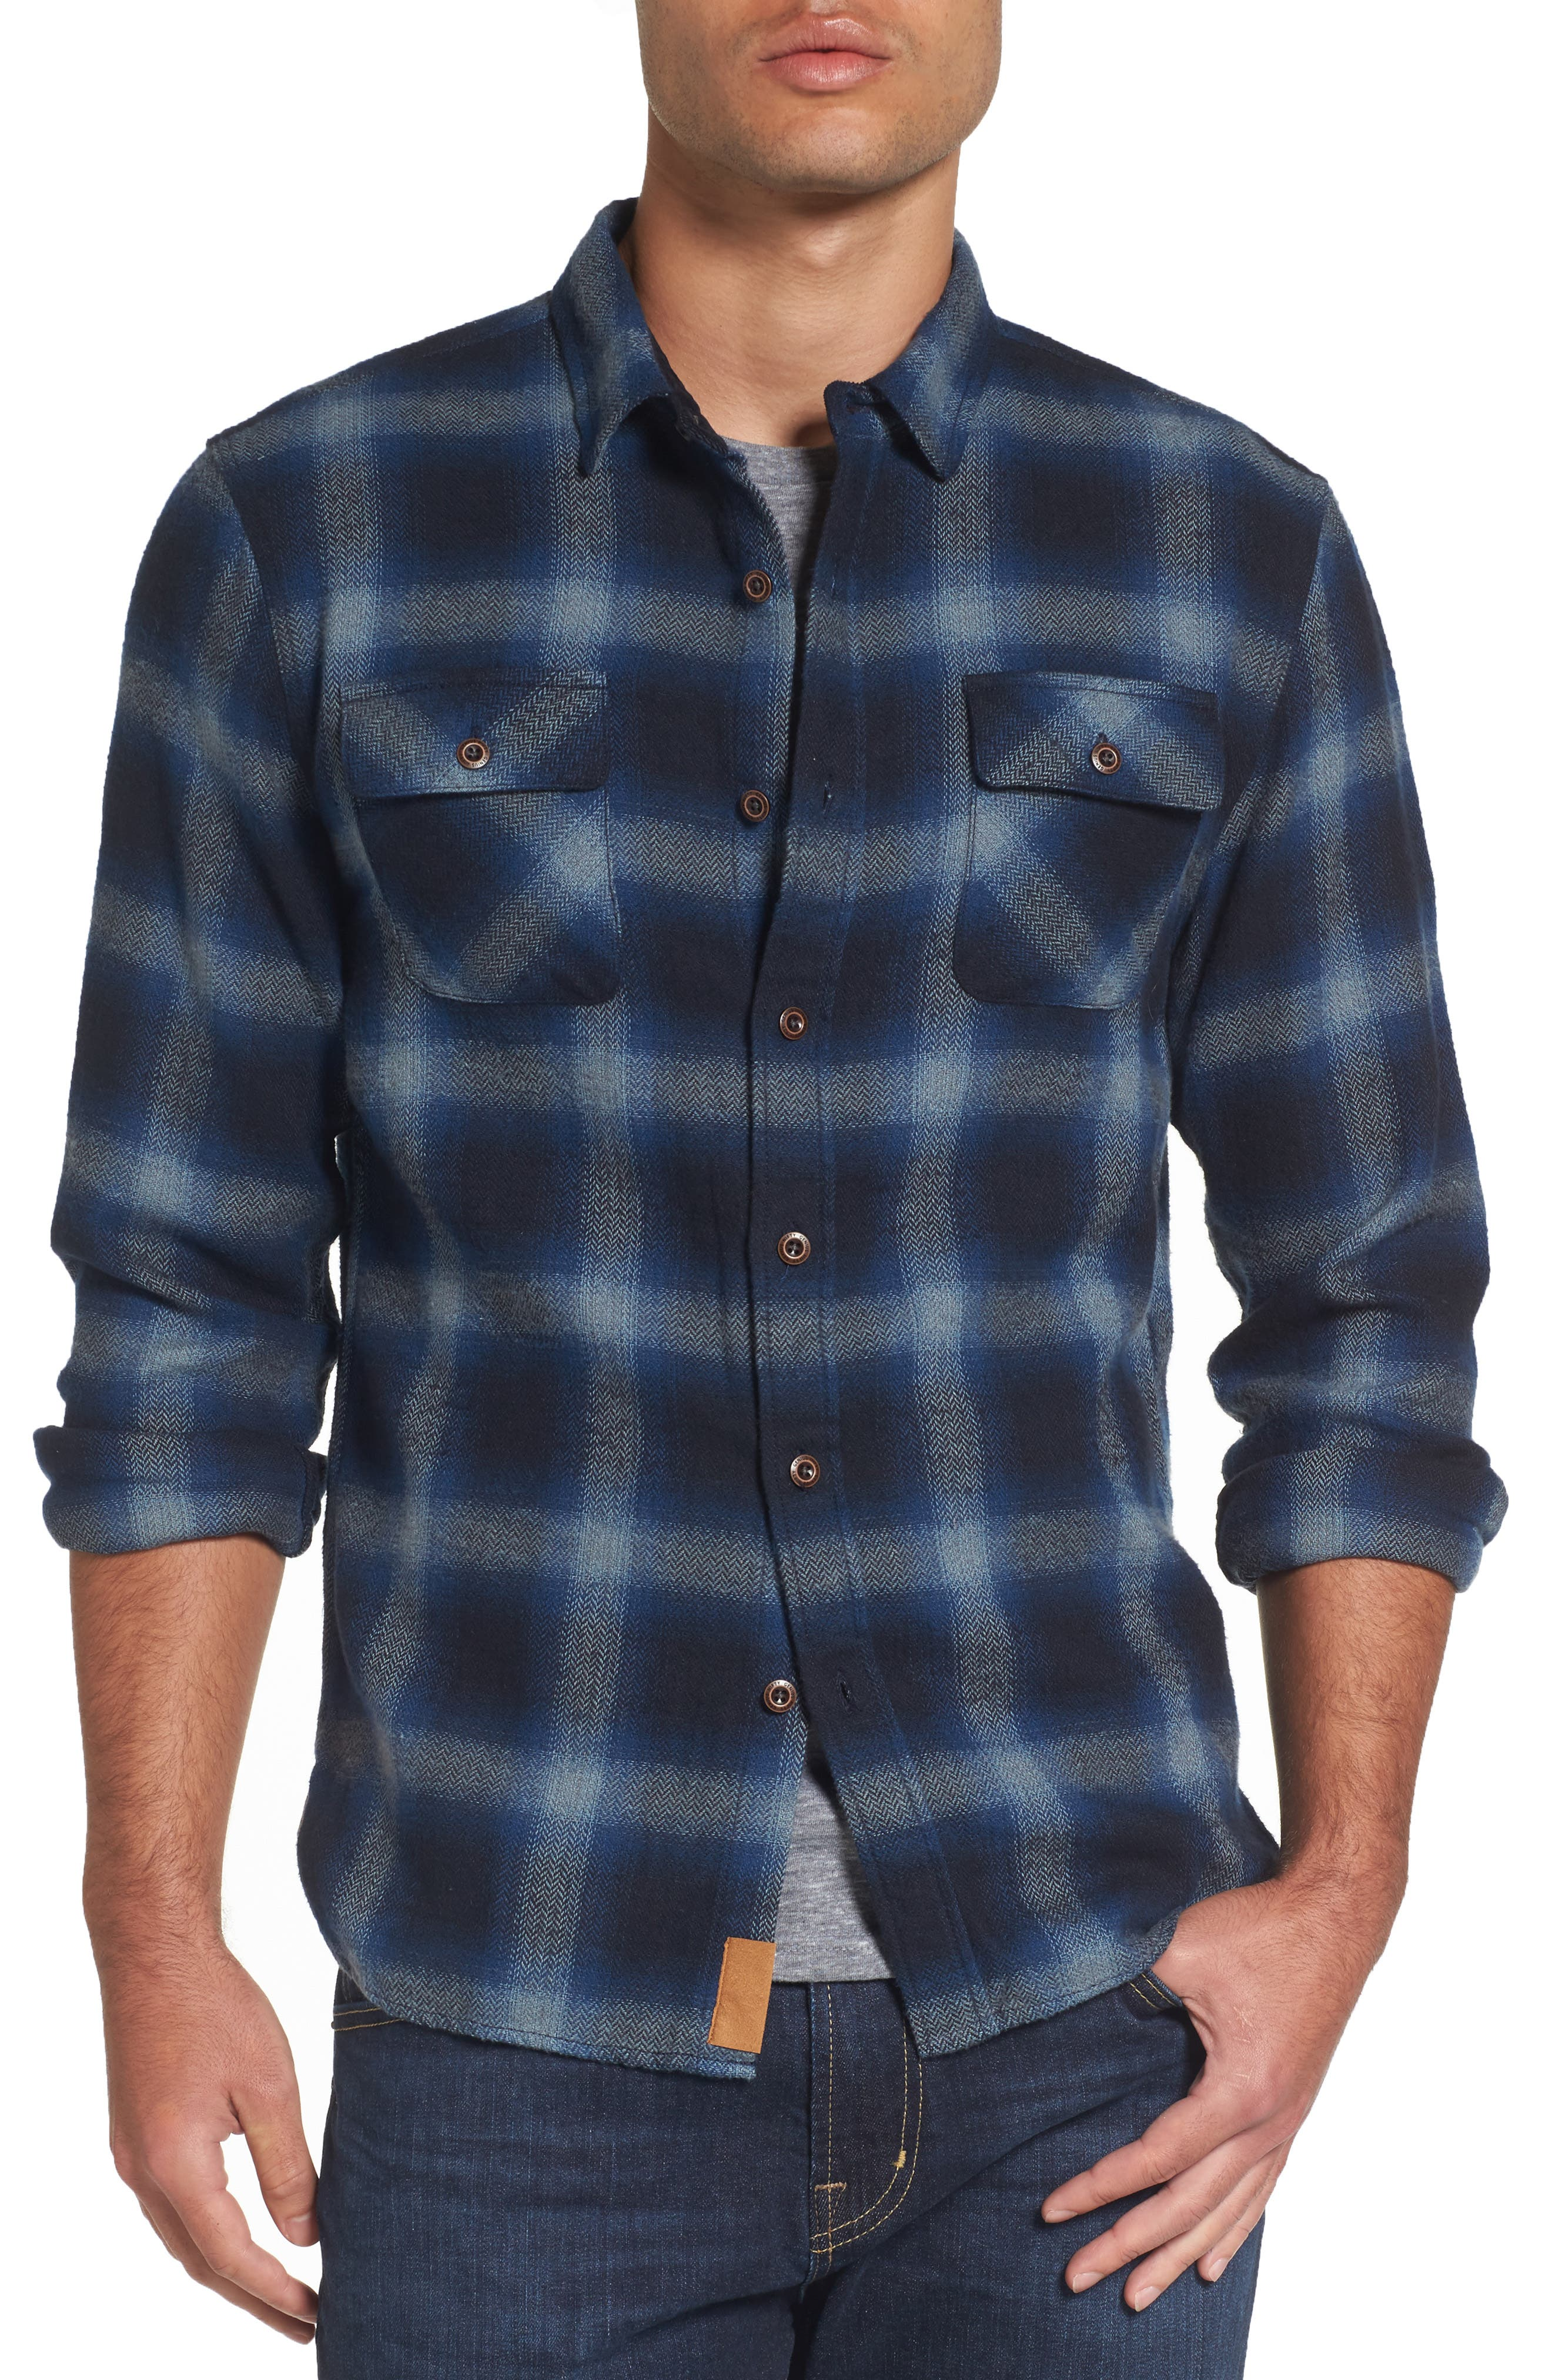 Alternate Image 1 Selected - Nifty Genius Truman Outdoor Check Sport Shirt